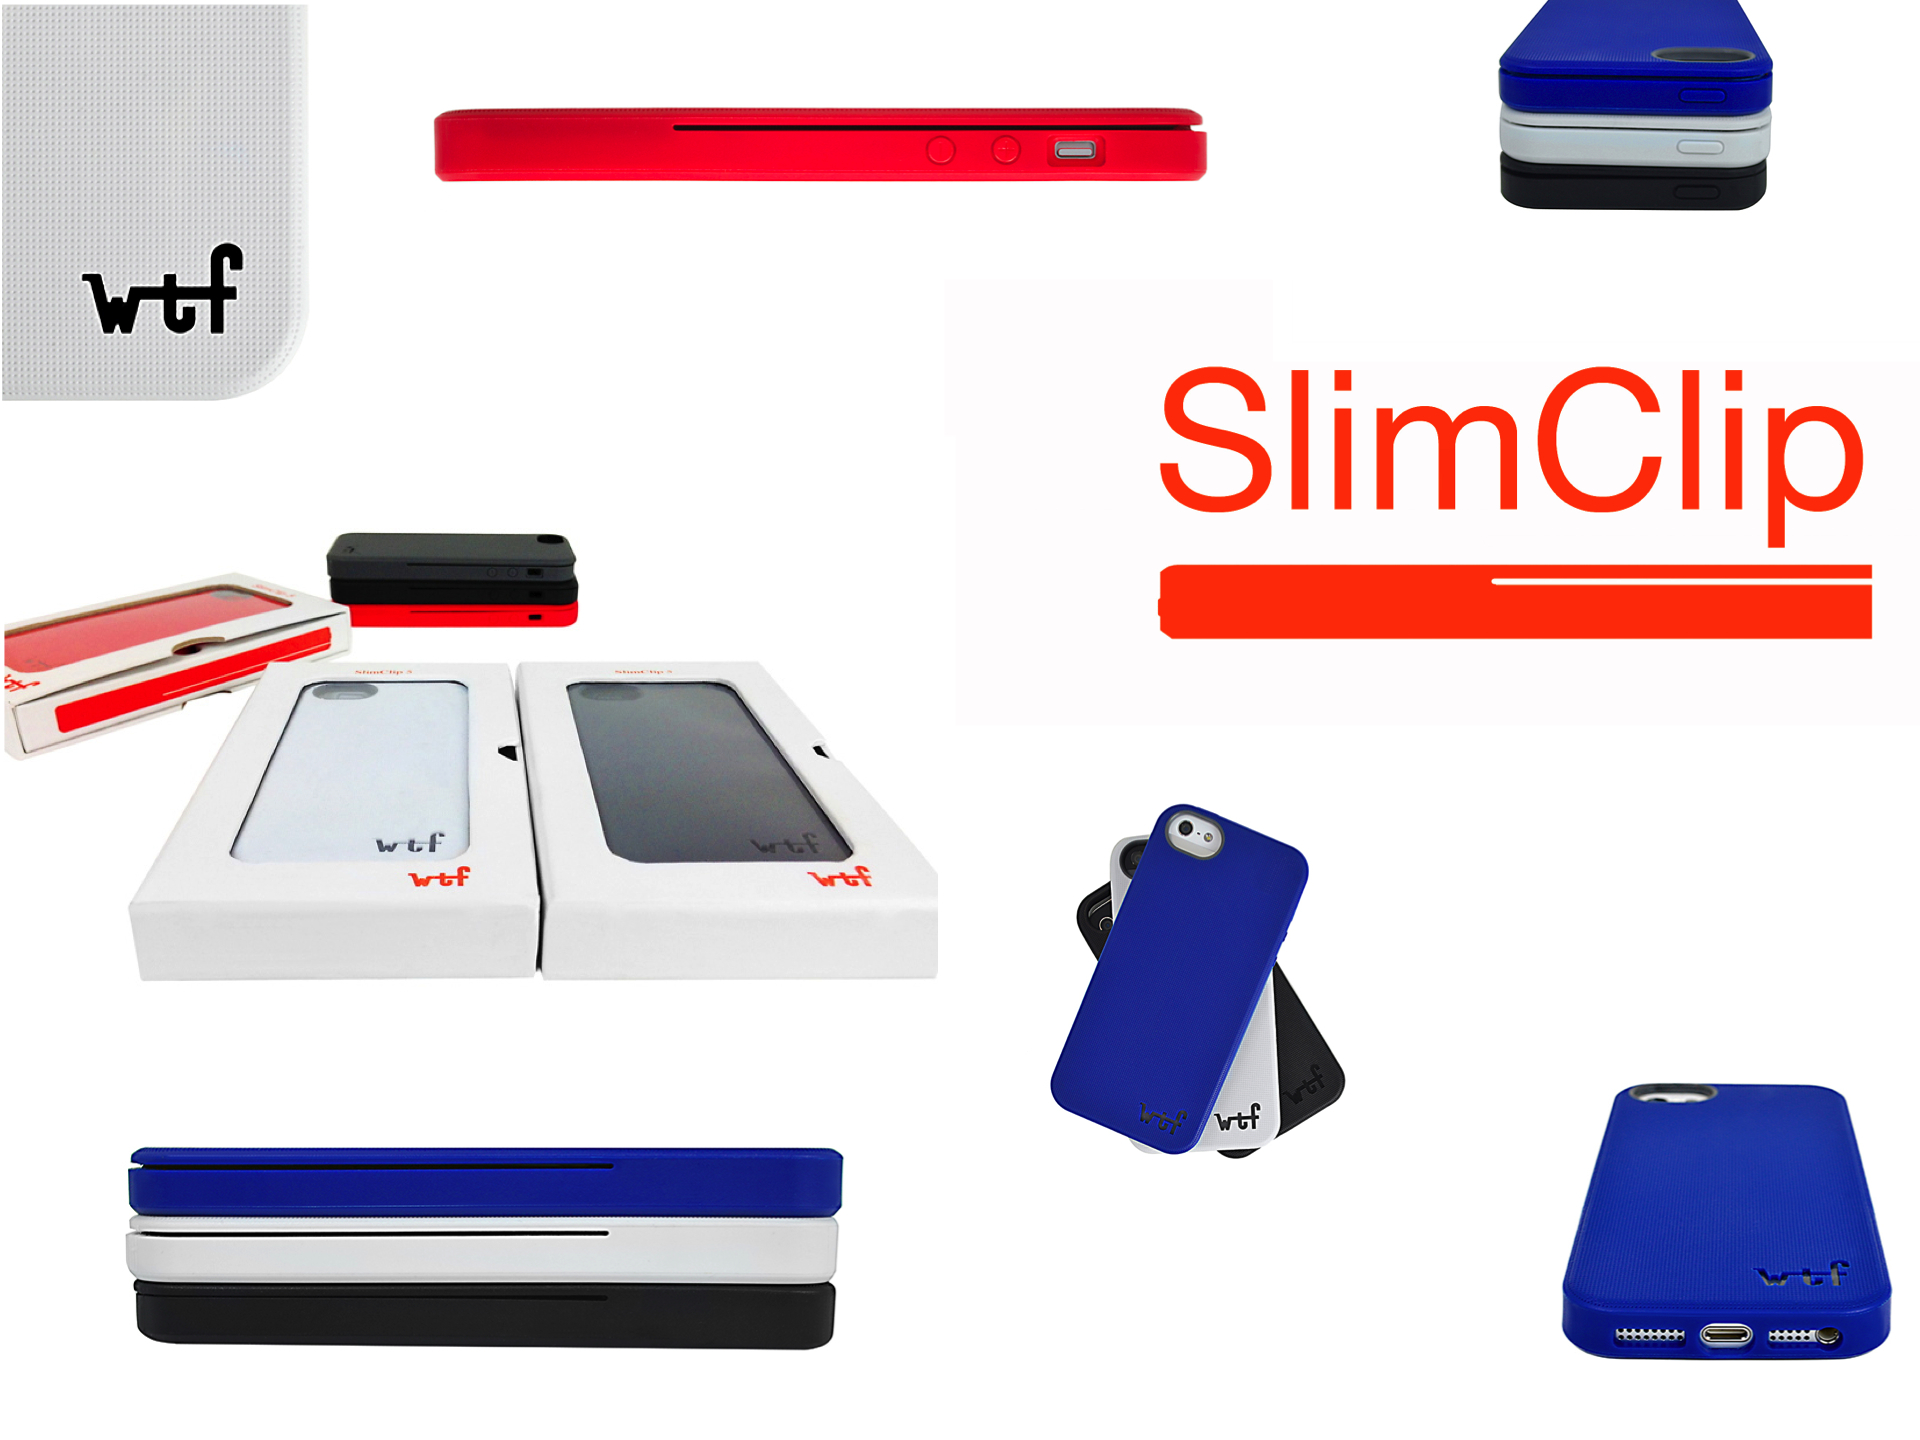 Slimclip Case And Luxbox Case By Thewtfactory For Iphone